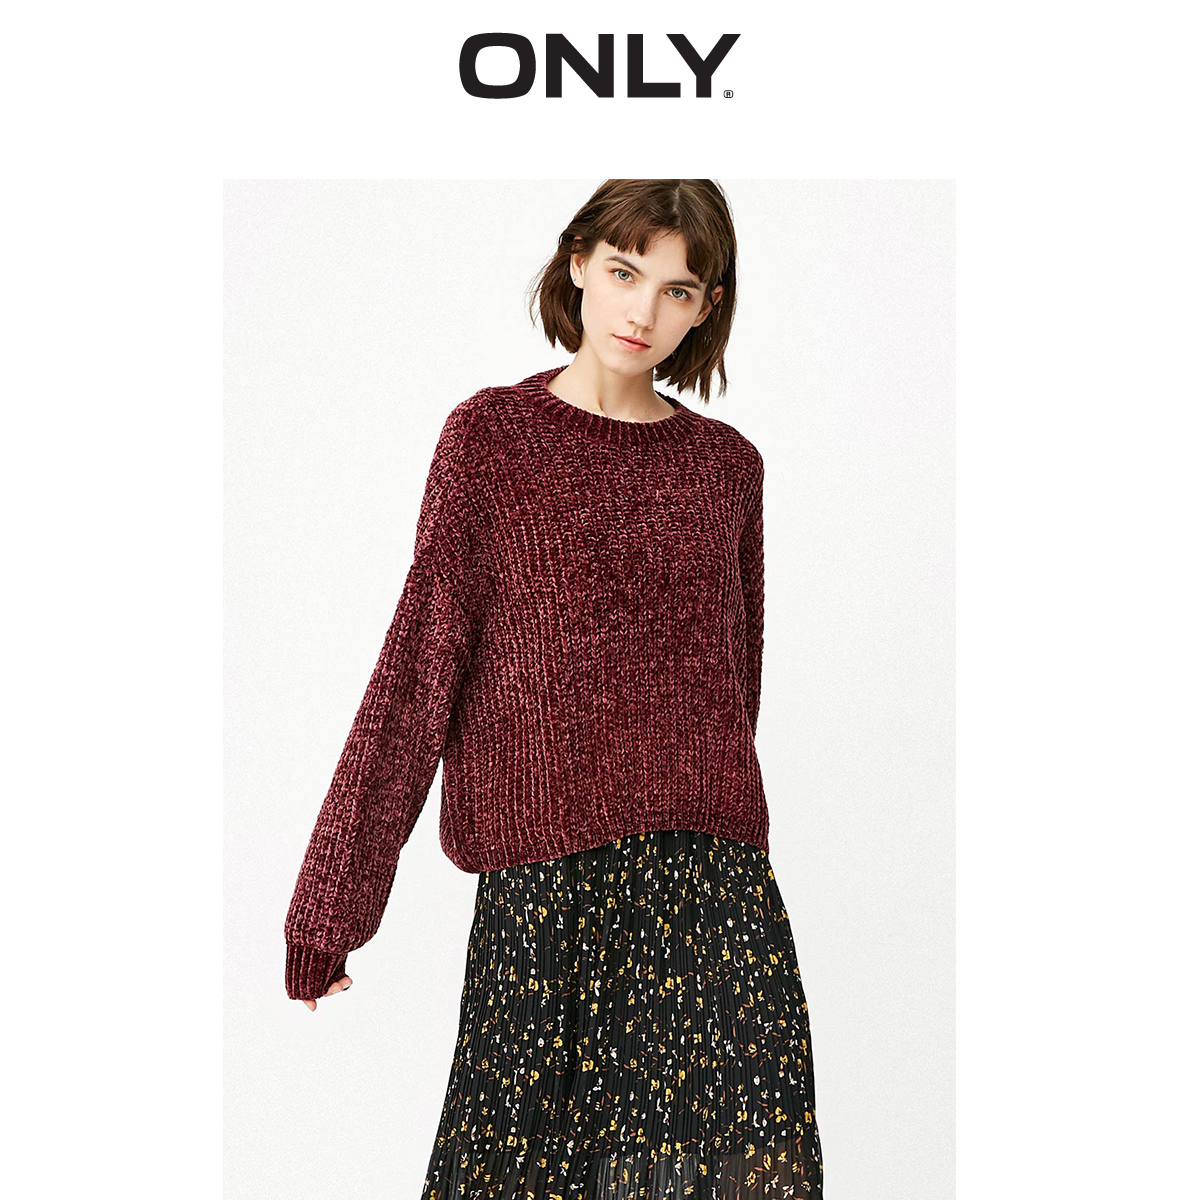 ONLY Women's 2019 Autumn New V Neckline Open Back Chenille Loose Knit Sweater | 119113525